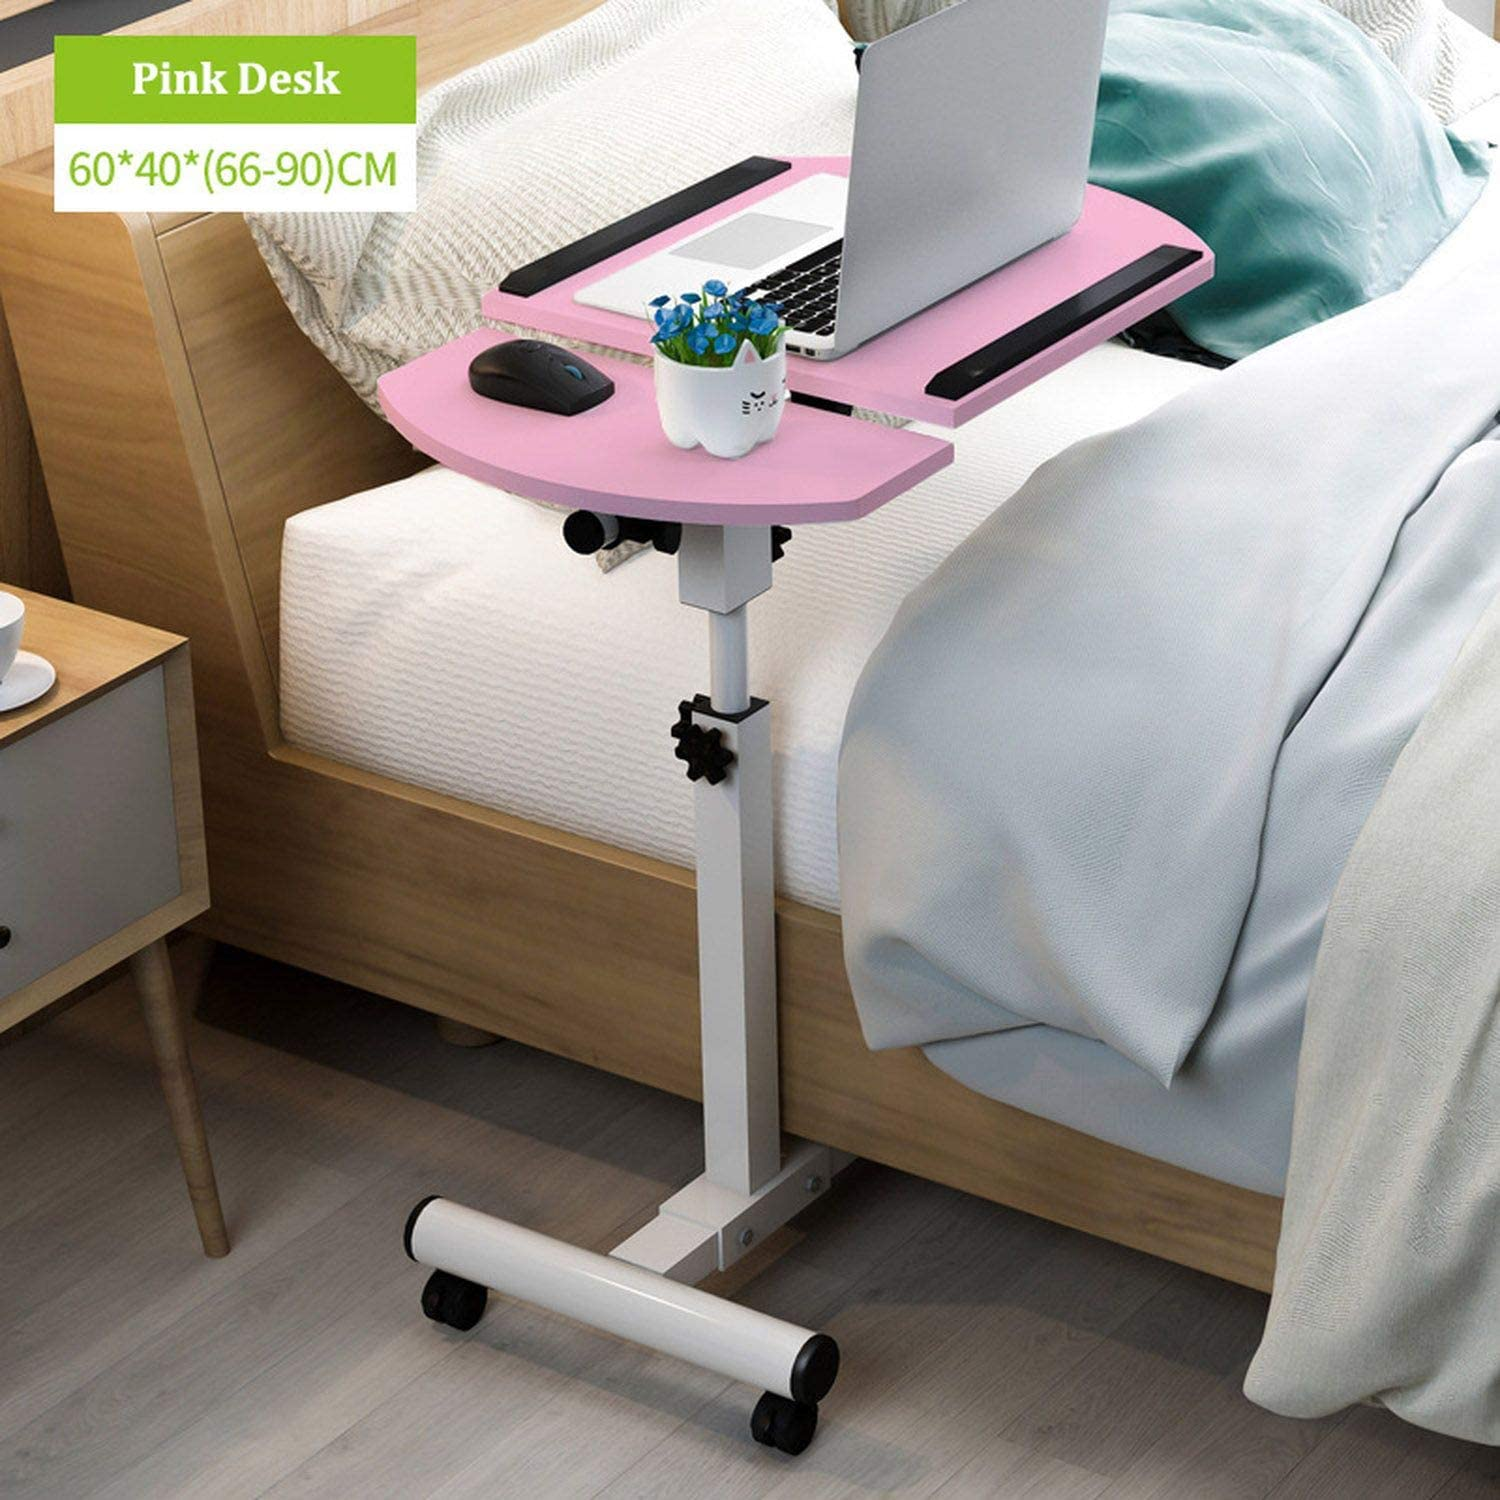 Amazon.com : Home Foldable Laptop Table Adjustable Bedside Table